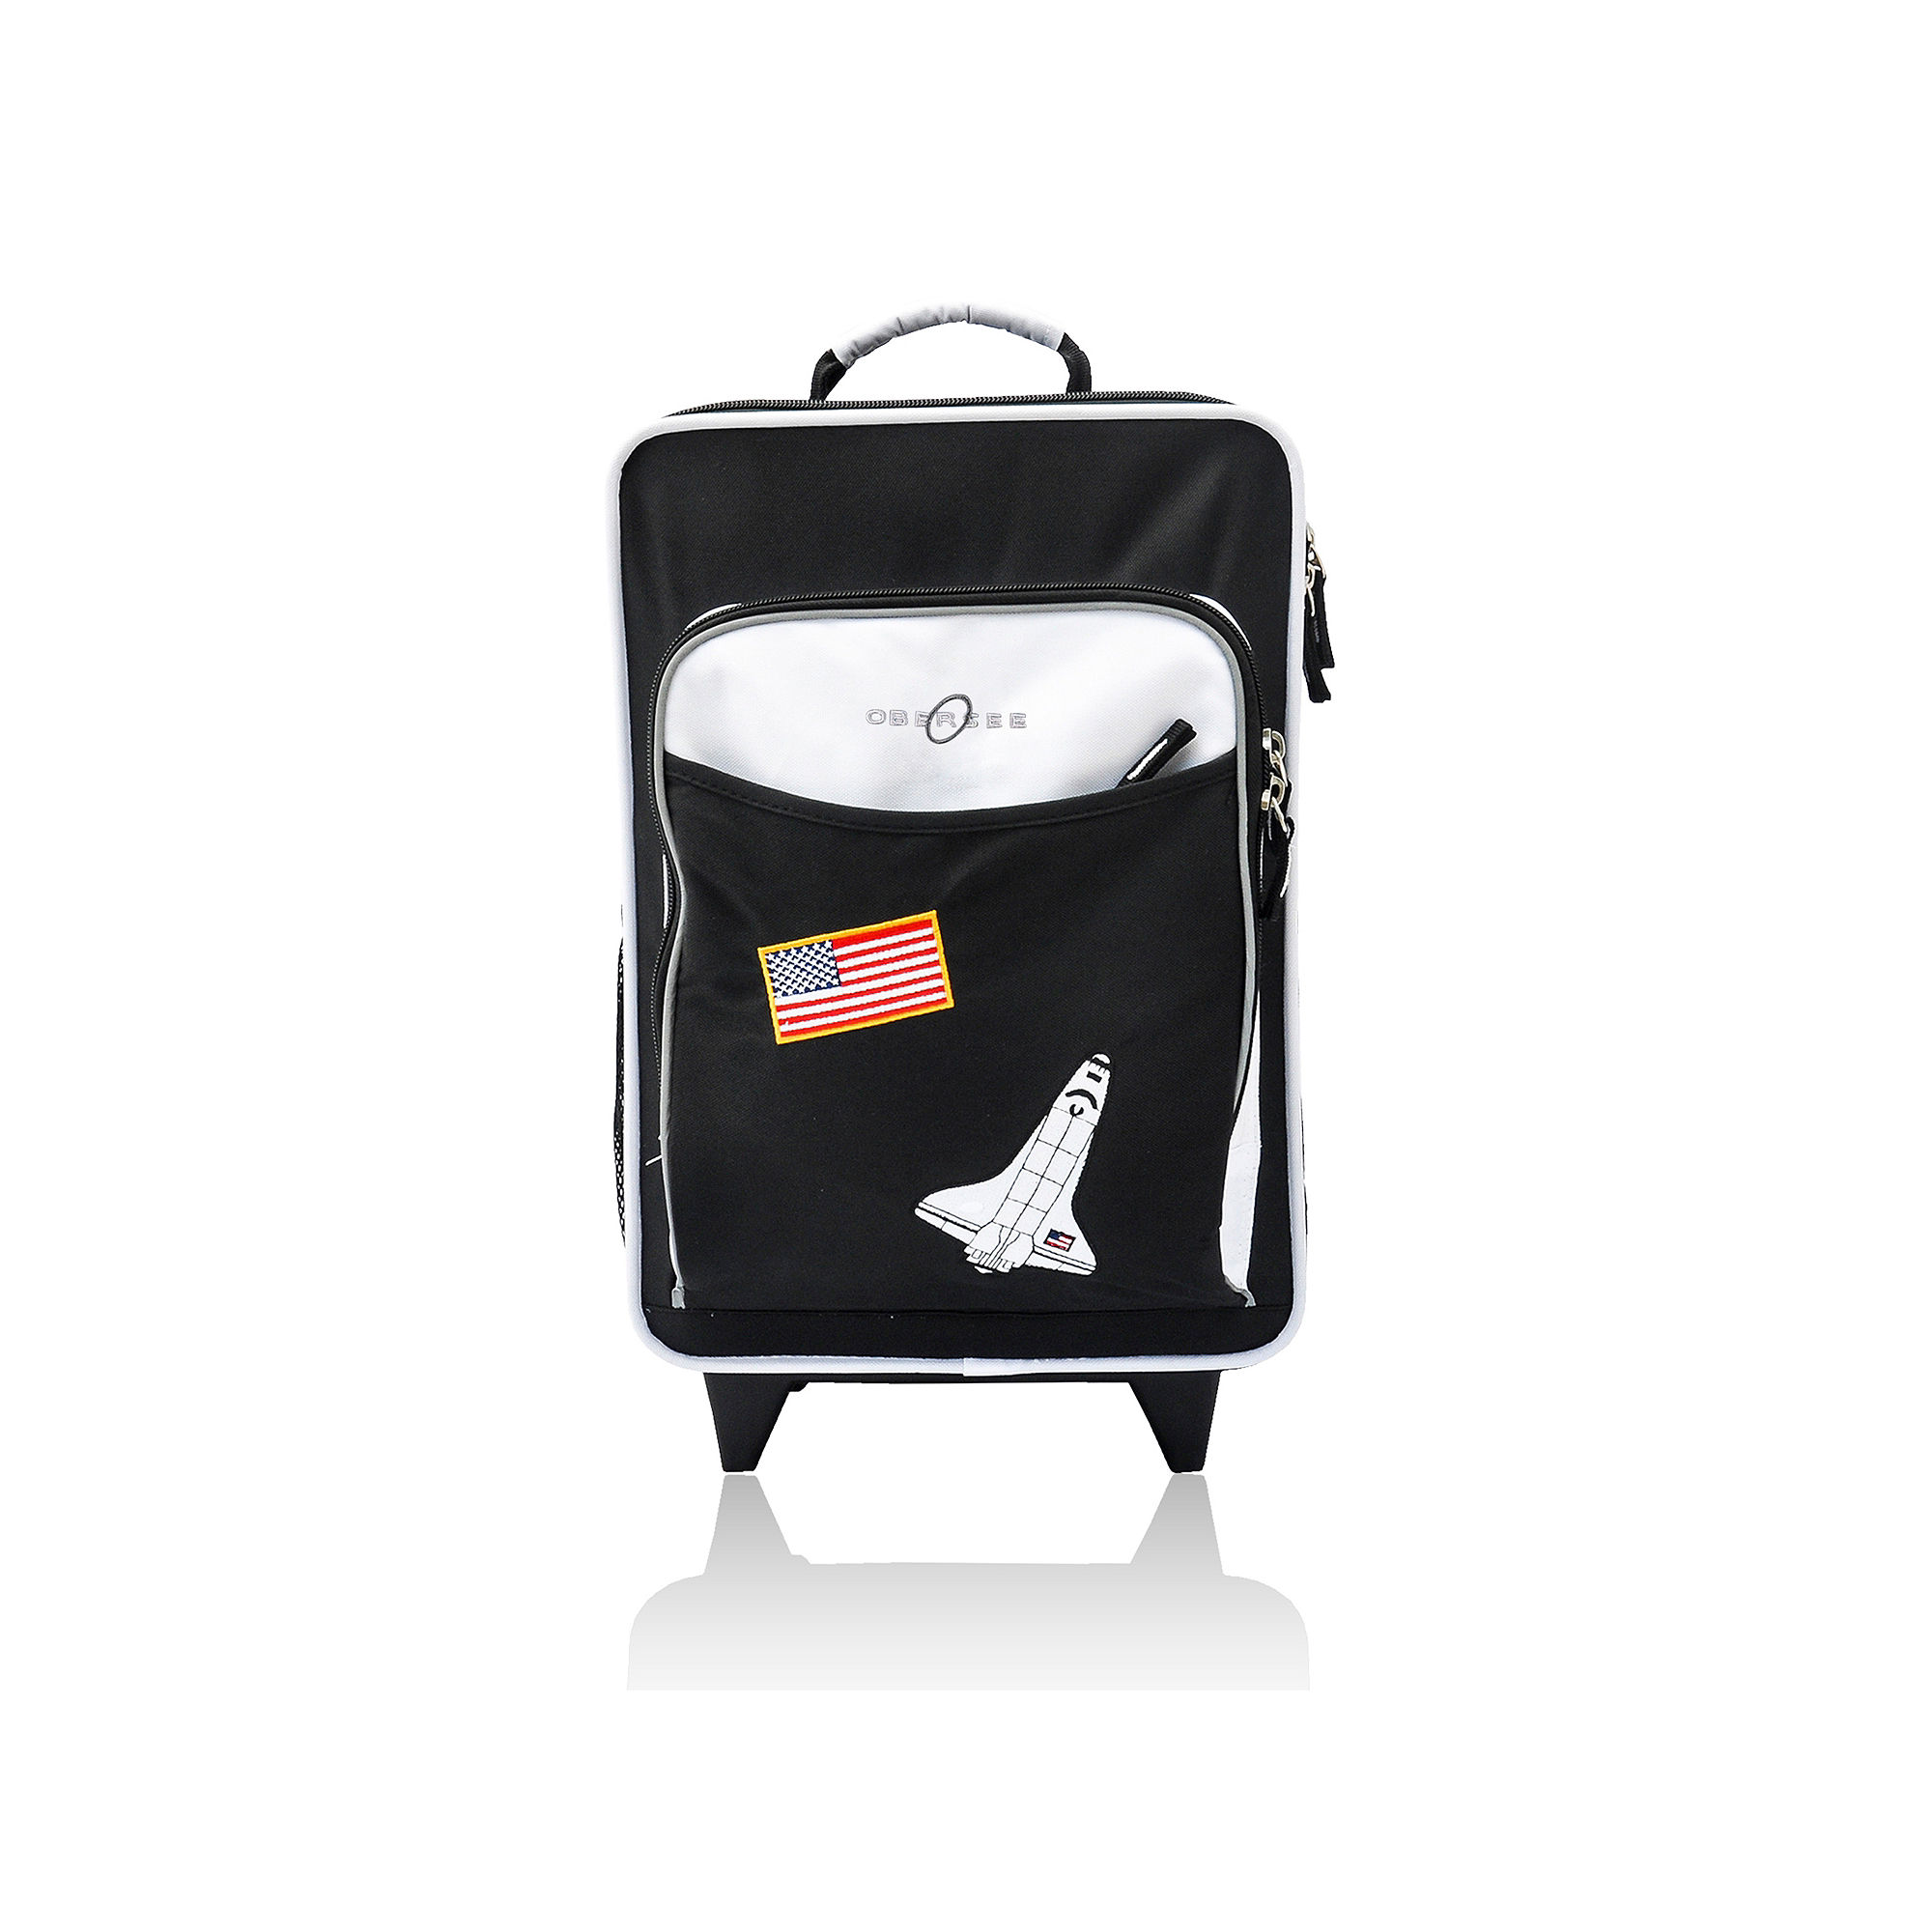 Obersee Kids Space Upright Roller Luggage with Integrated Cooler